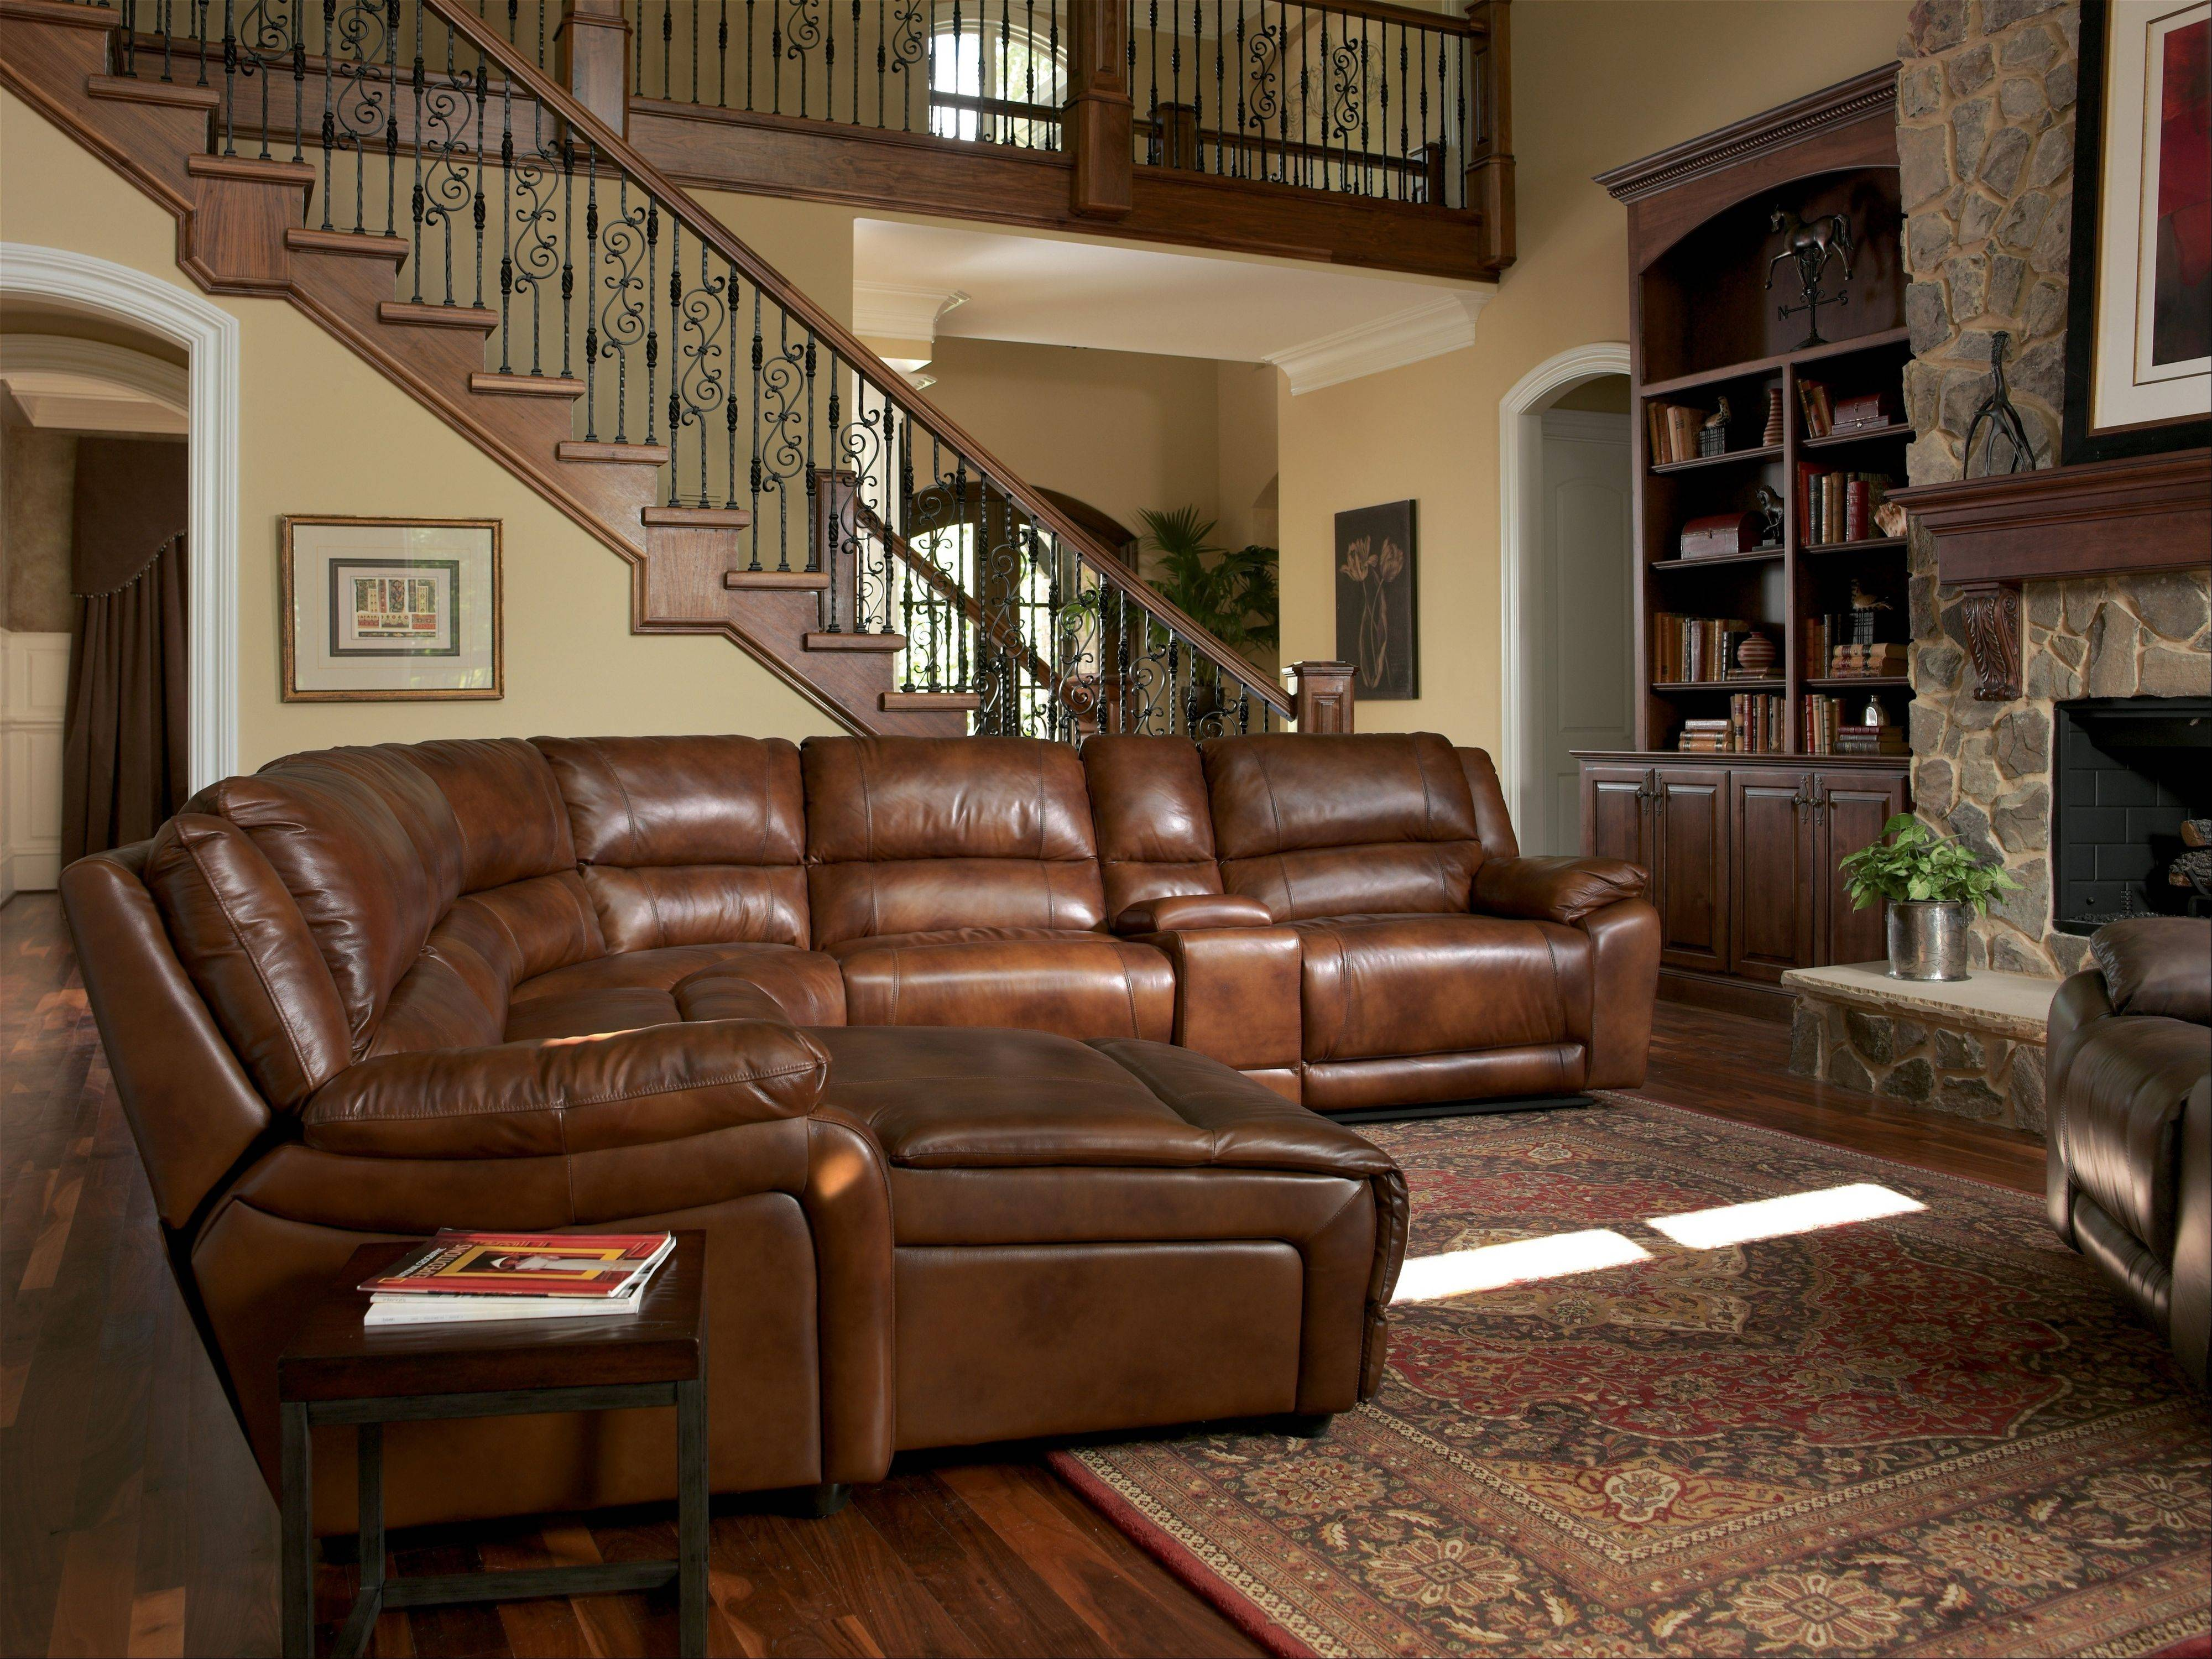 Sectionals with built-in, motorized recliners are popular with homeowners.